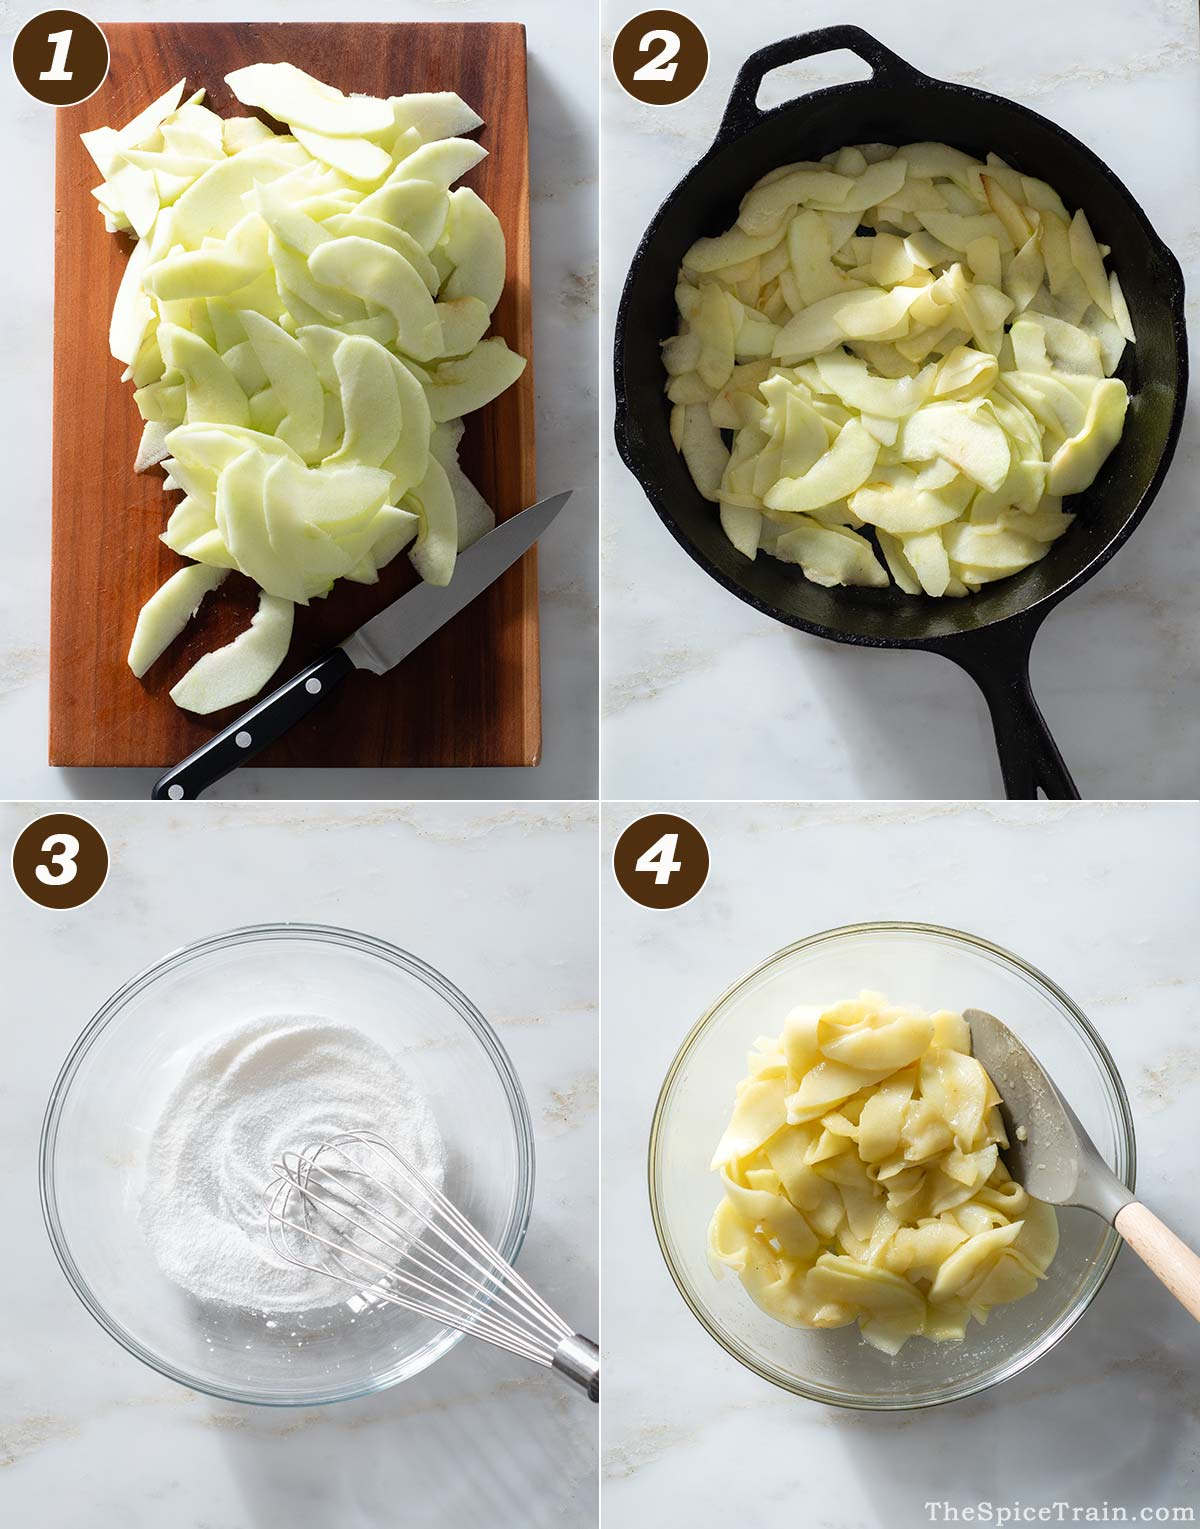 Sliced apples being prepared for an apple tart in four steps.